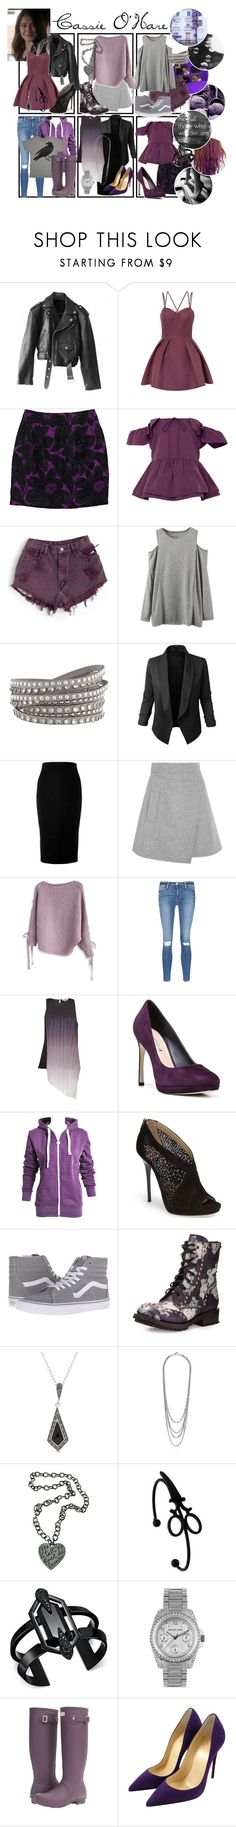 """Cassie O'Hare"" by pie-epic ❤ liked on Polyvore featuring Jean-Paul Gaultier, Chi Chi, Trina Turk, Rochas, GET LOST, American Apparel, WithChic, Jupe de Abby, Victoria Beckham and Carven"